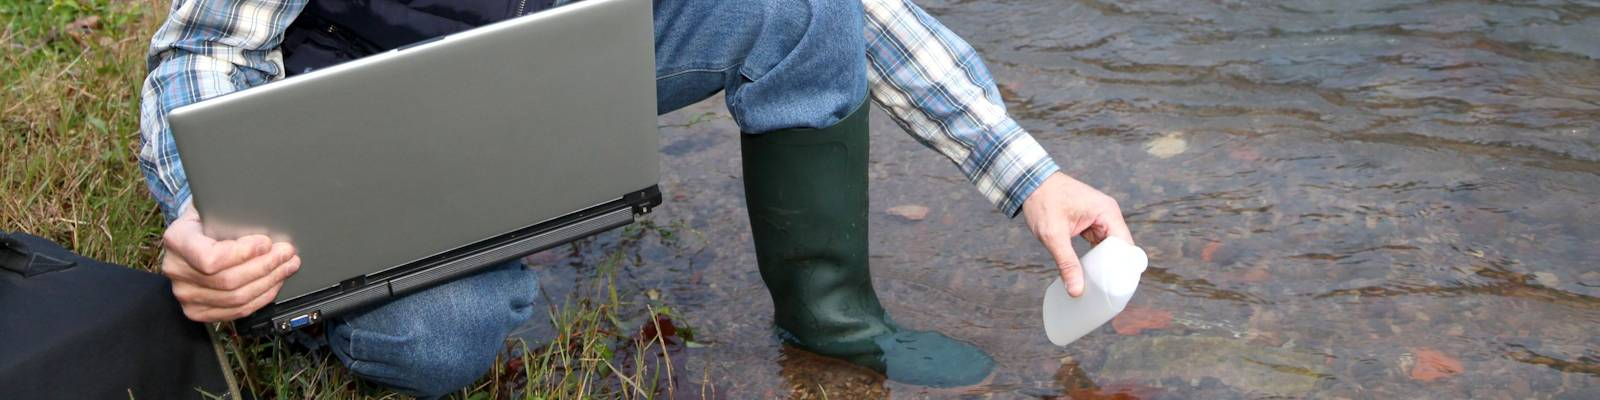 Monitoring the Stream Helps Assure Water Quality